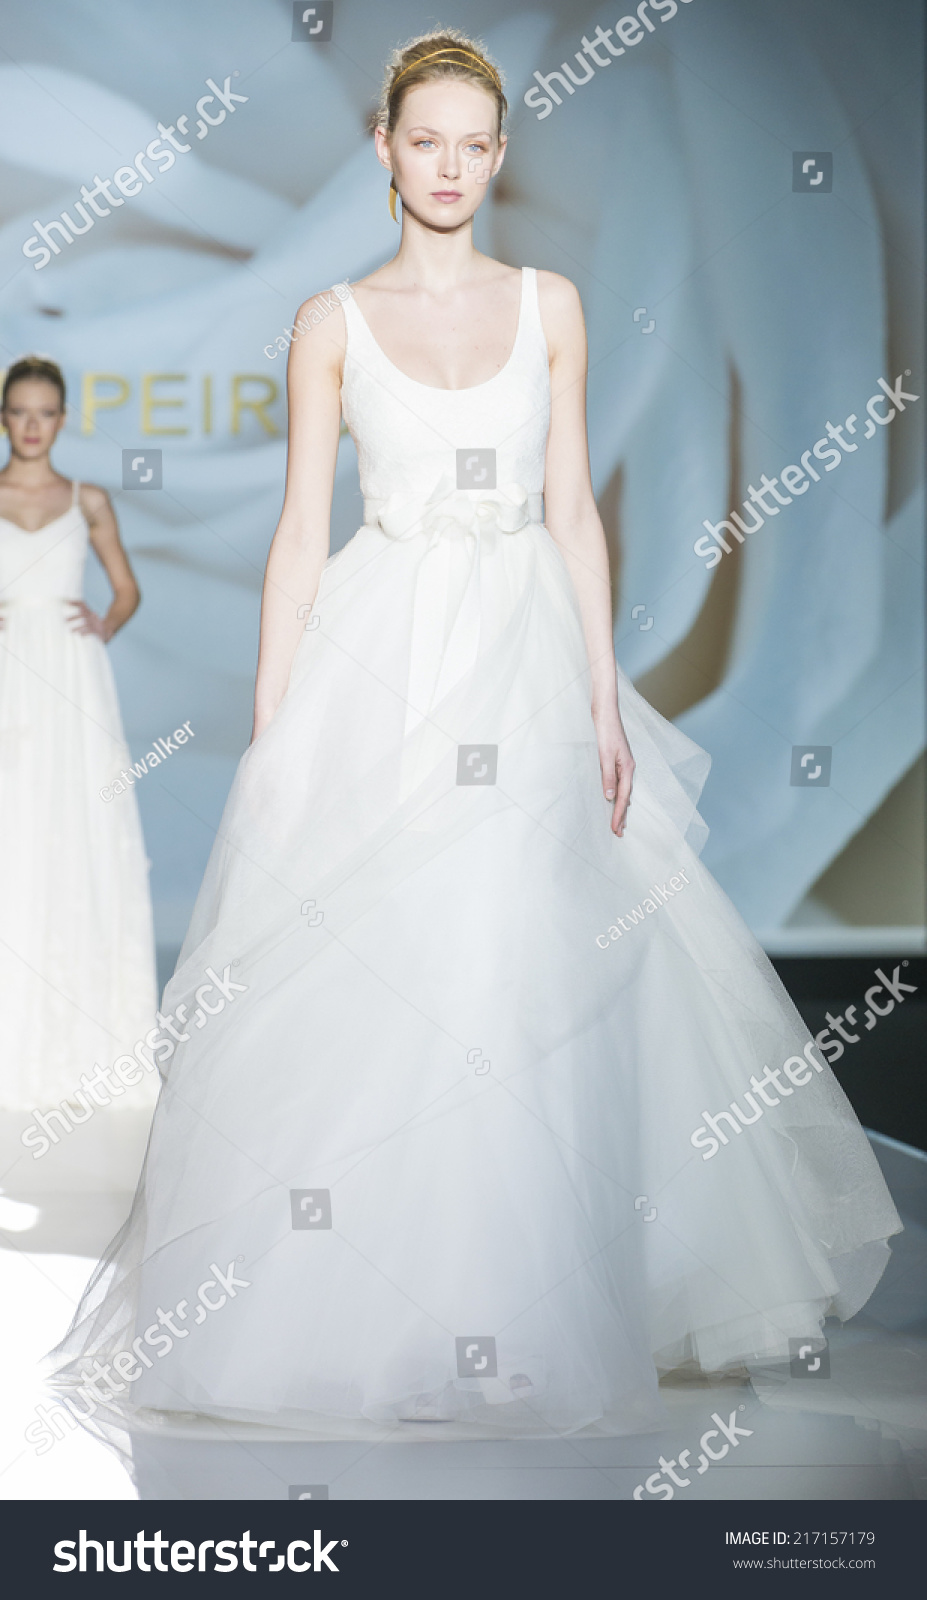 Magnificent Jesus Peiro Wedding Dress Images - All Wedding Dresses ...